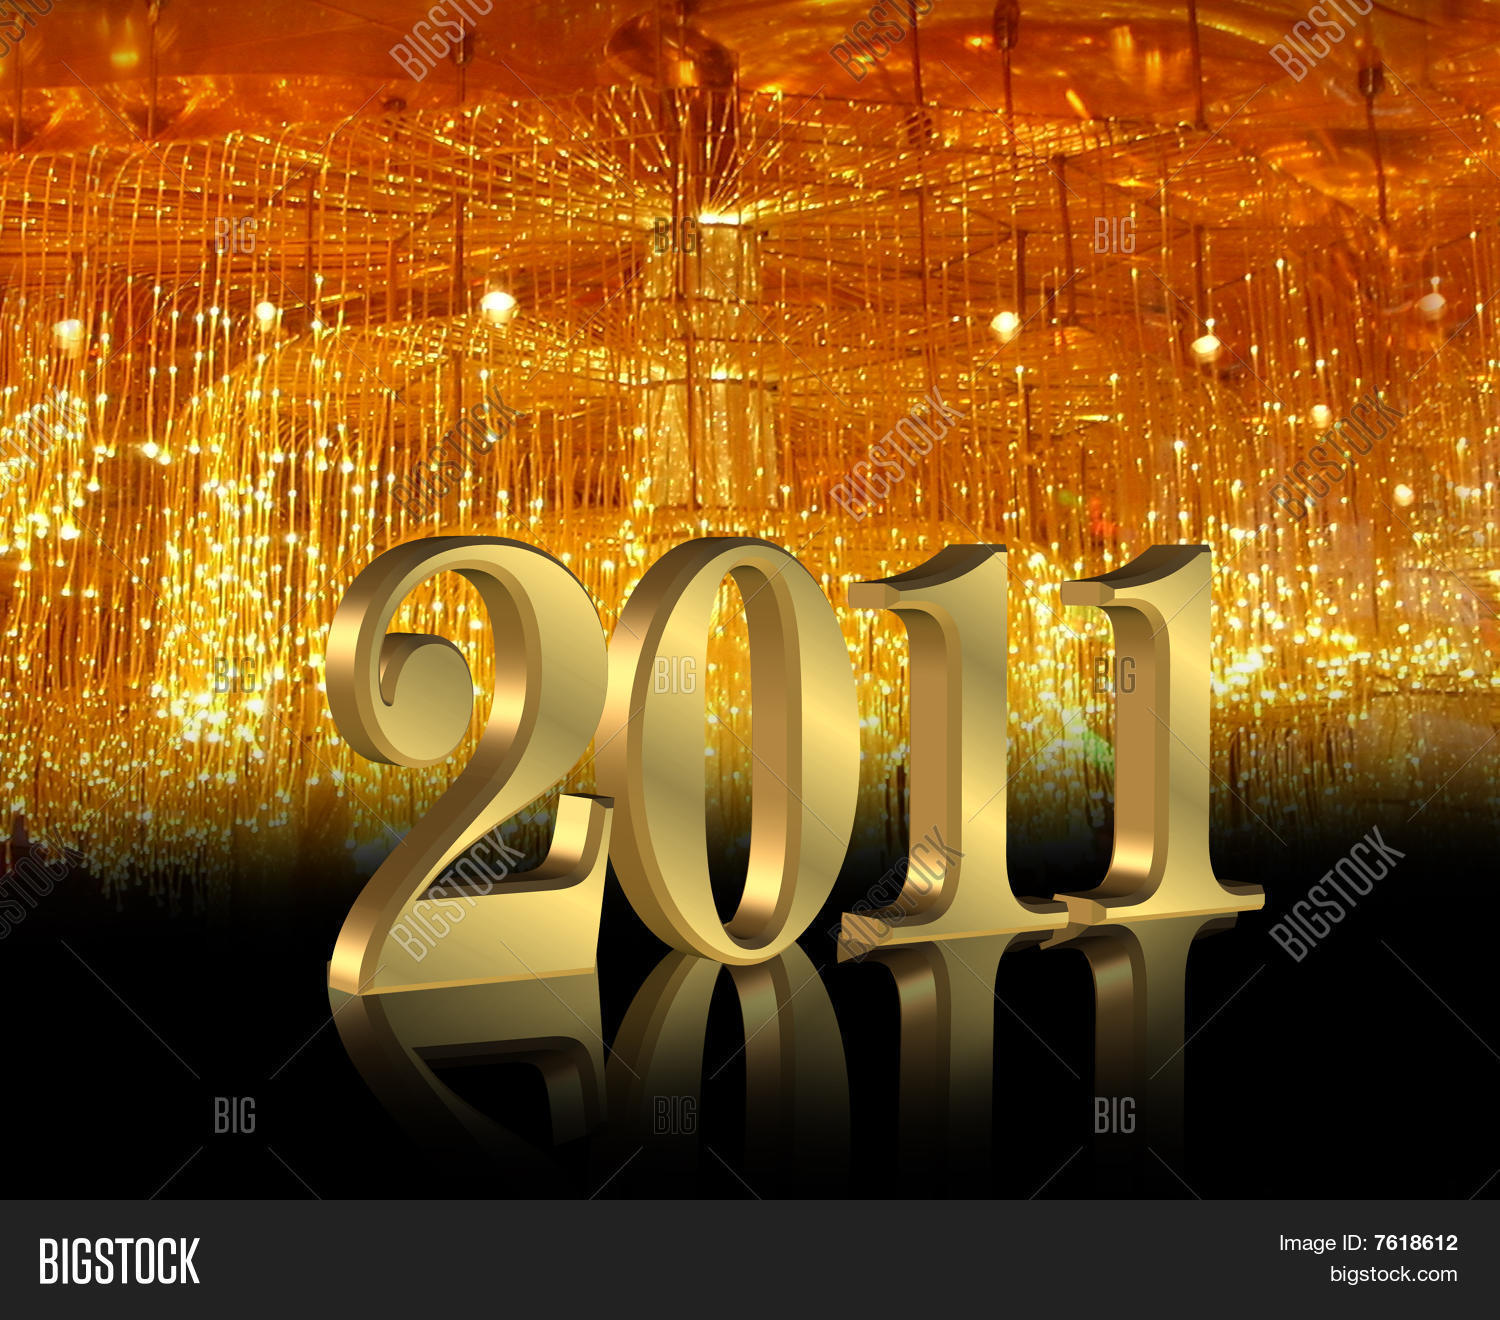 3d,2011,artistic,background,black,card,celebrate,celebration,christmas,decoration,digital,dimensional,eve,fireworks,gold,golden,graphic,greeting,happy,happy new year,holiday,illustration,invitation,light,new,new year,new year background,new year celebration,new year party,new years,new years eve,new years eve party,numbers,occasion,party,year